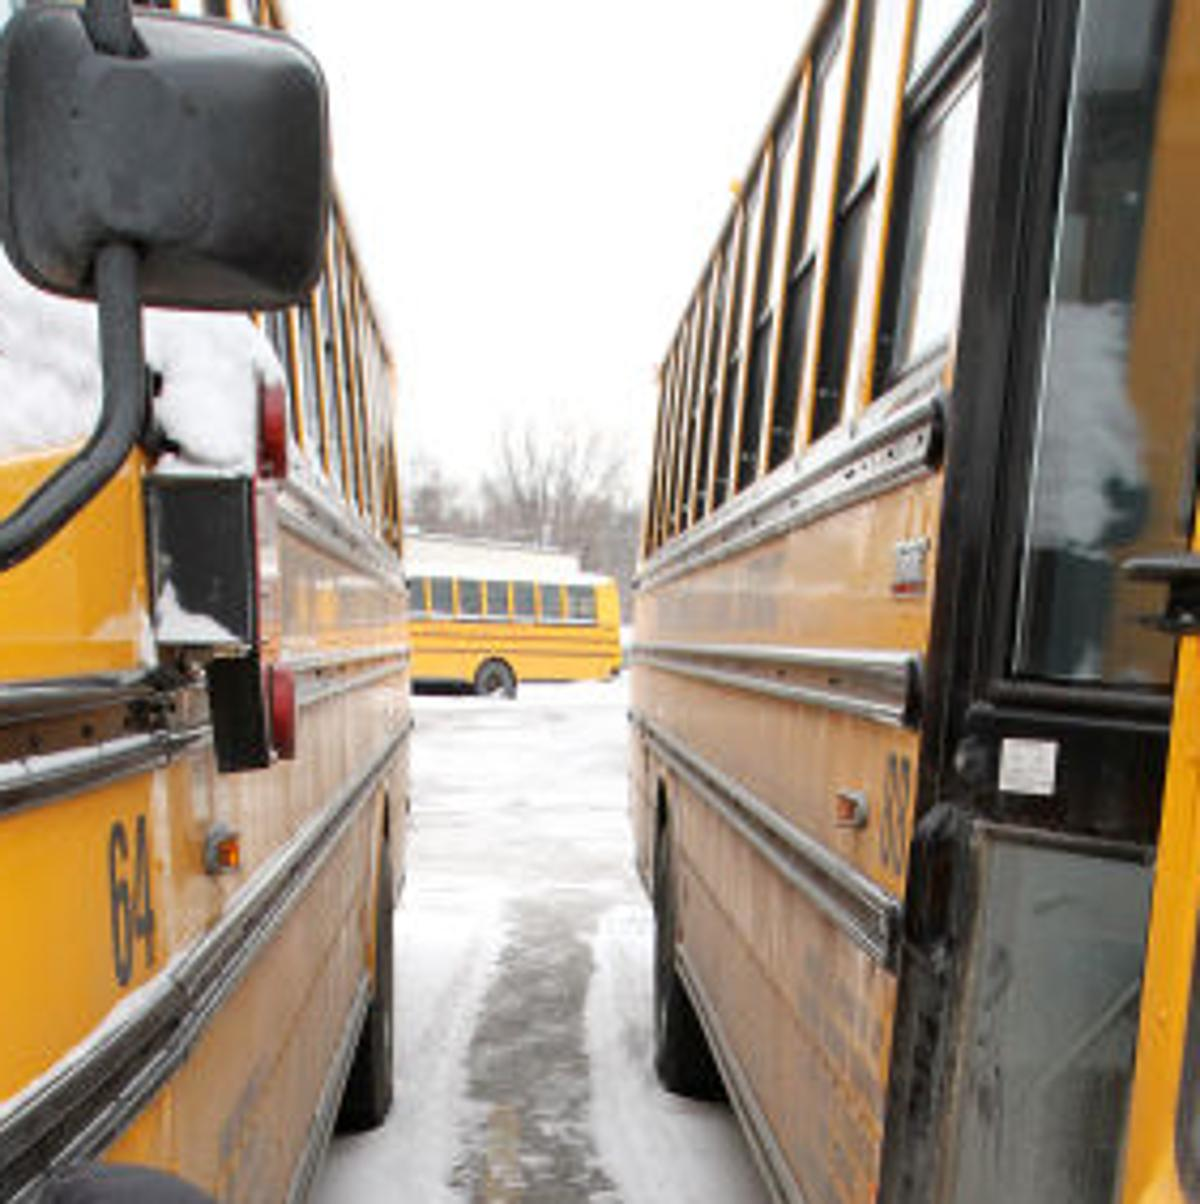 Update: Some schools are closed today or delaying the start of